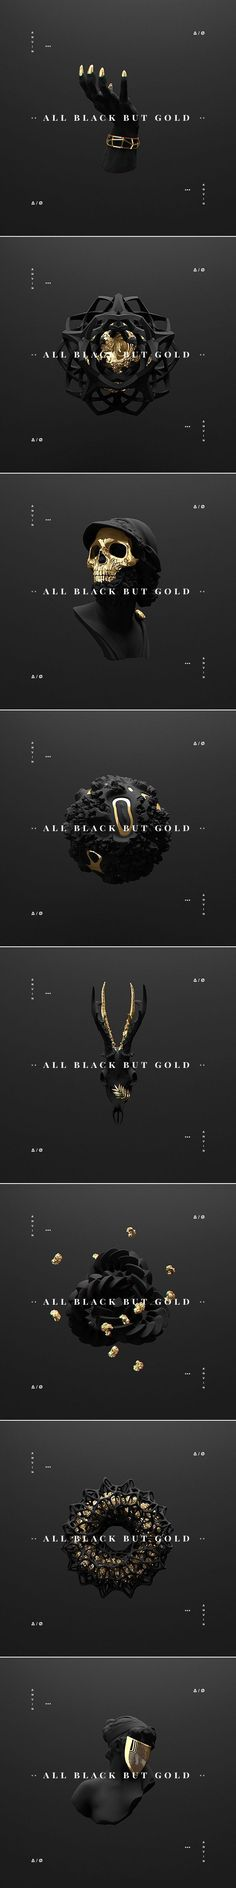 Love the black and gold in this. Also the minimal/modern design feel of the text